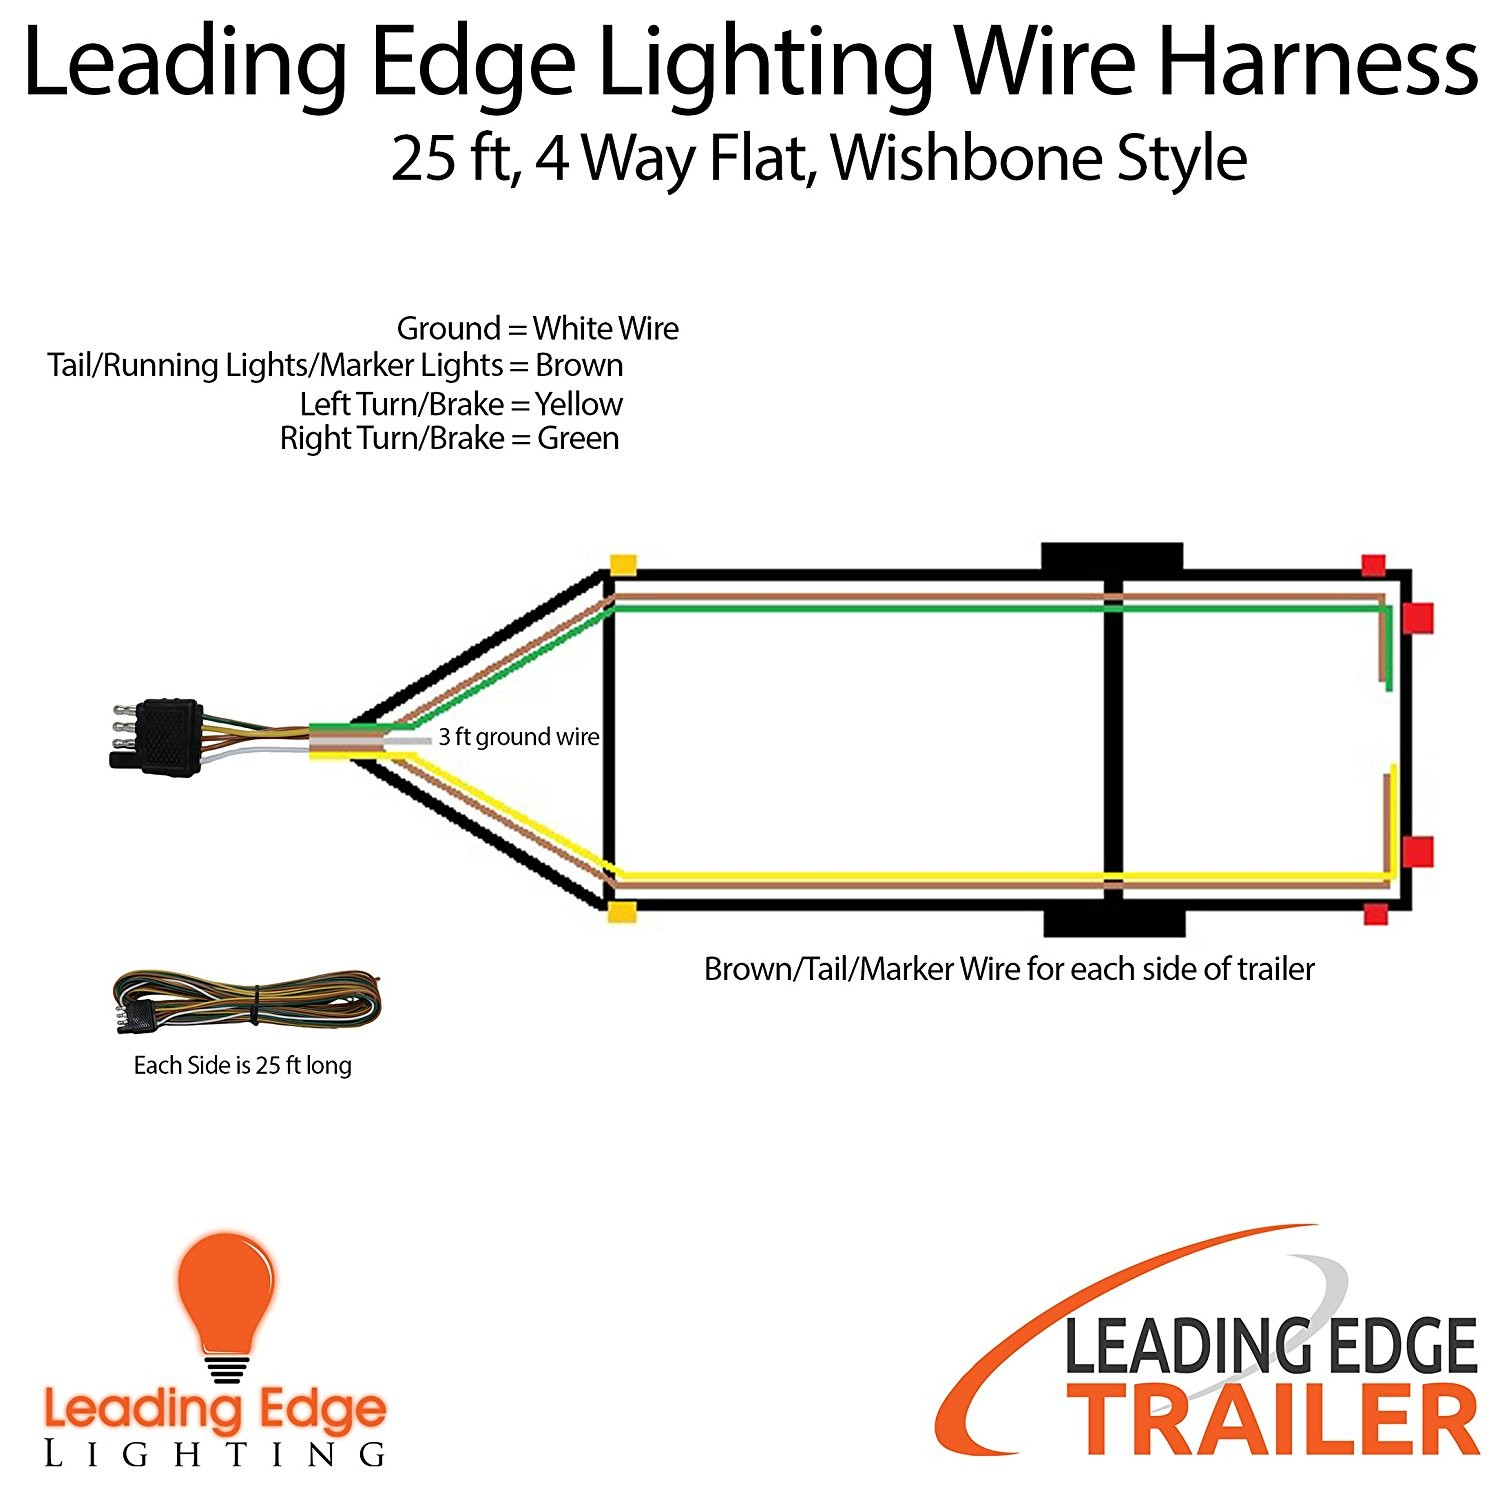 Trailer Wiring Diagram 4 Way Flat Best 7 Way Trailer Connector Wiring Diagram Everything You